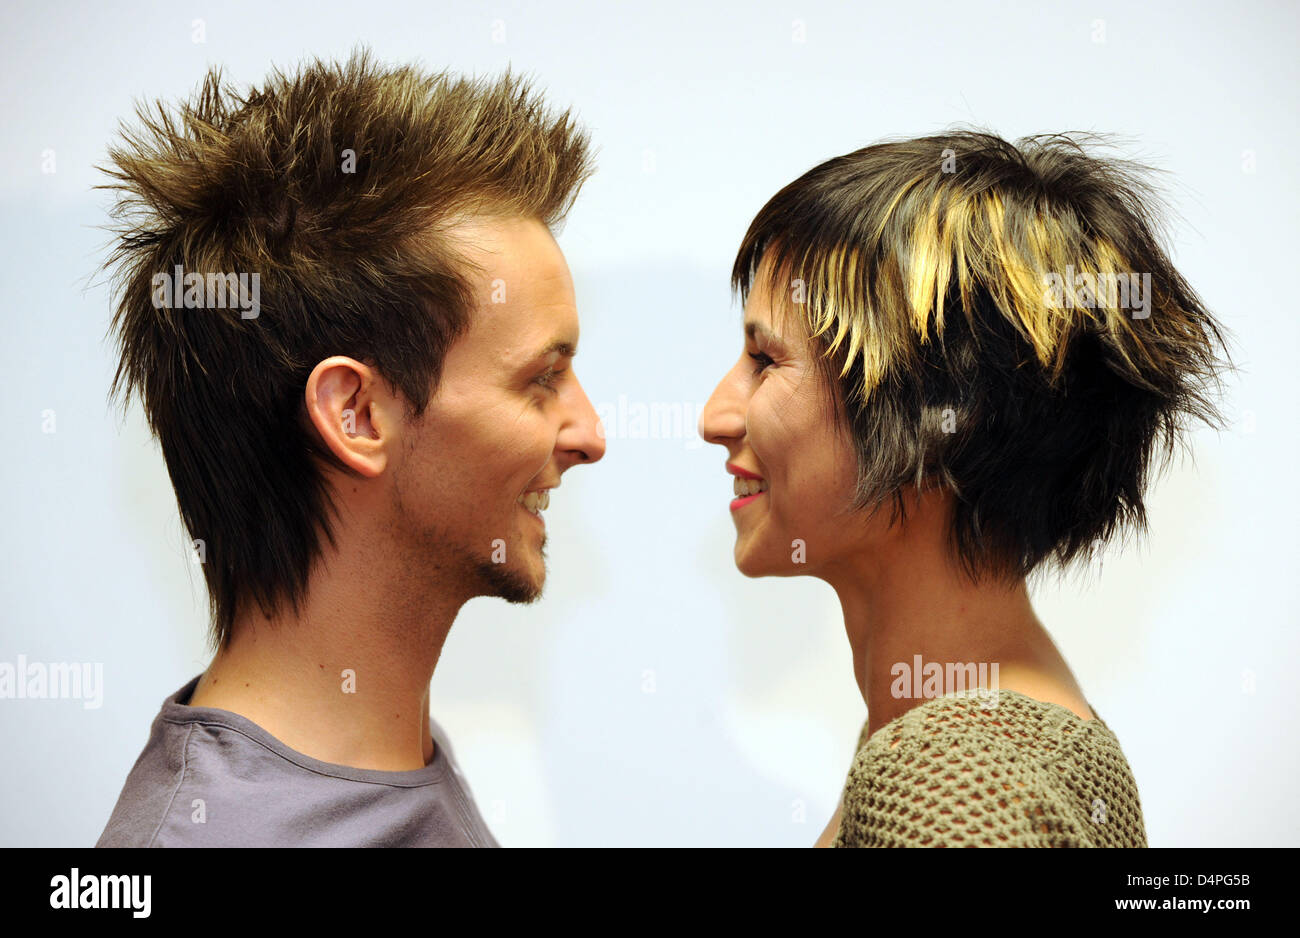 The Models Jacqueline And Peter Present Hairstyle Summer Trends 2009